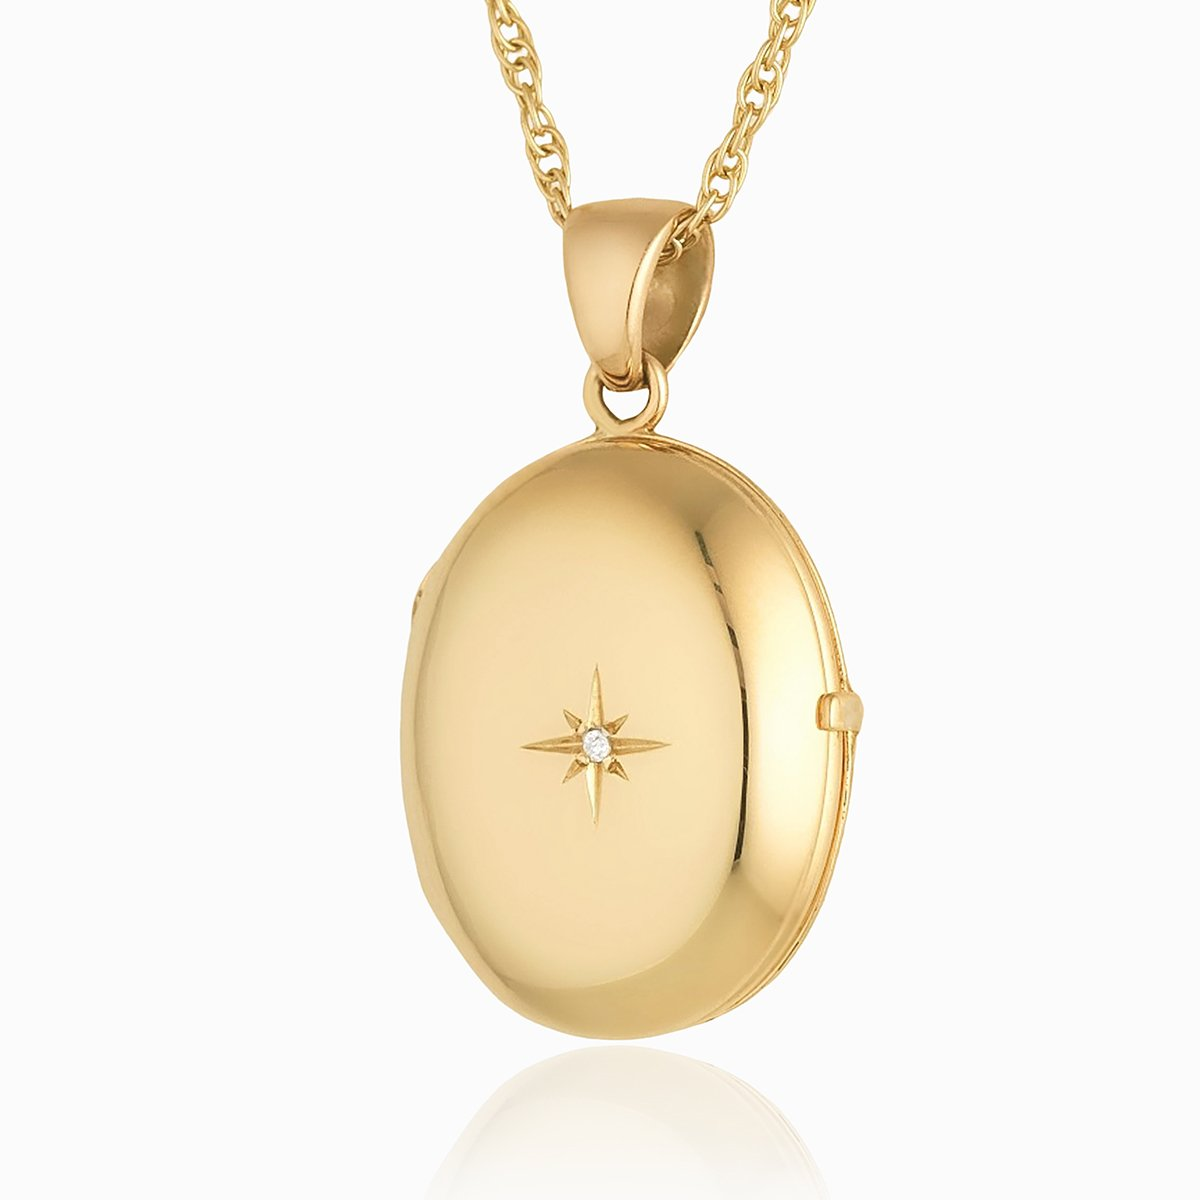 Product title: Dainty Gold 4-Photo Locket, product type: Locket